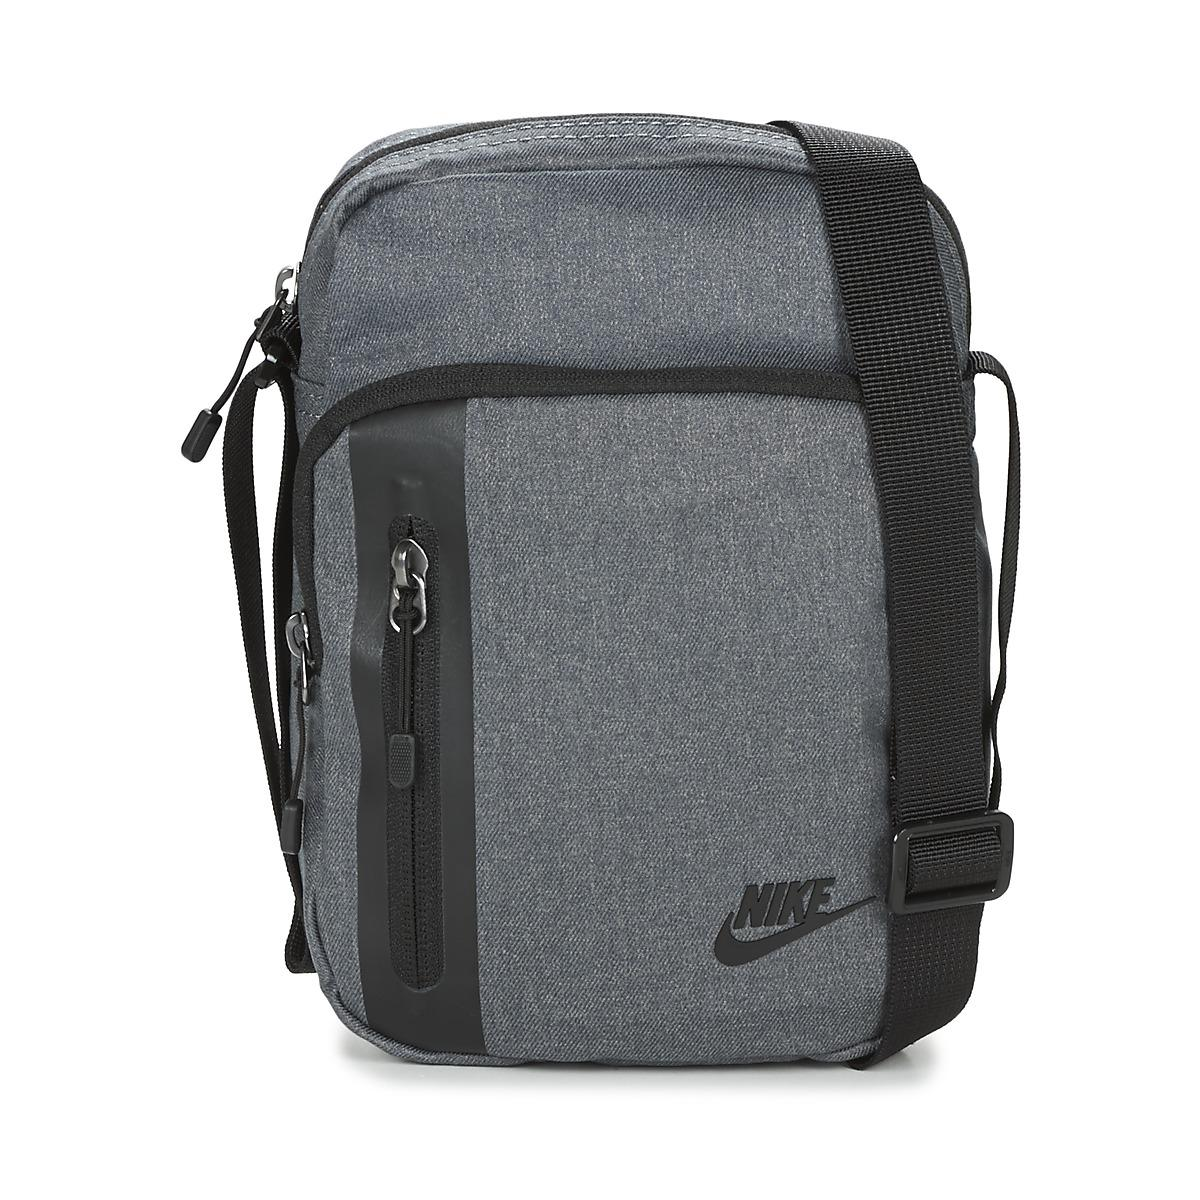 cc42a1cefa Nike Core Small Items 3.0 Women s Pouch In Grey in Gray for Men - Lyst